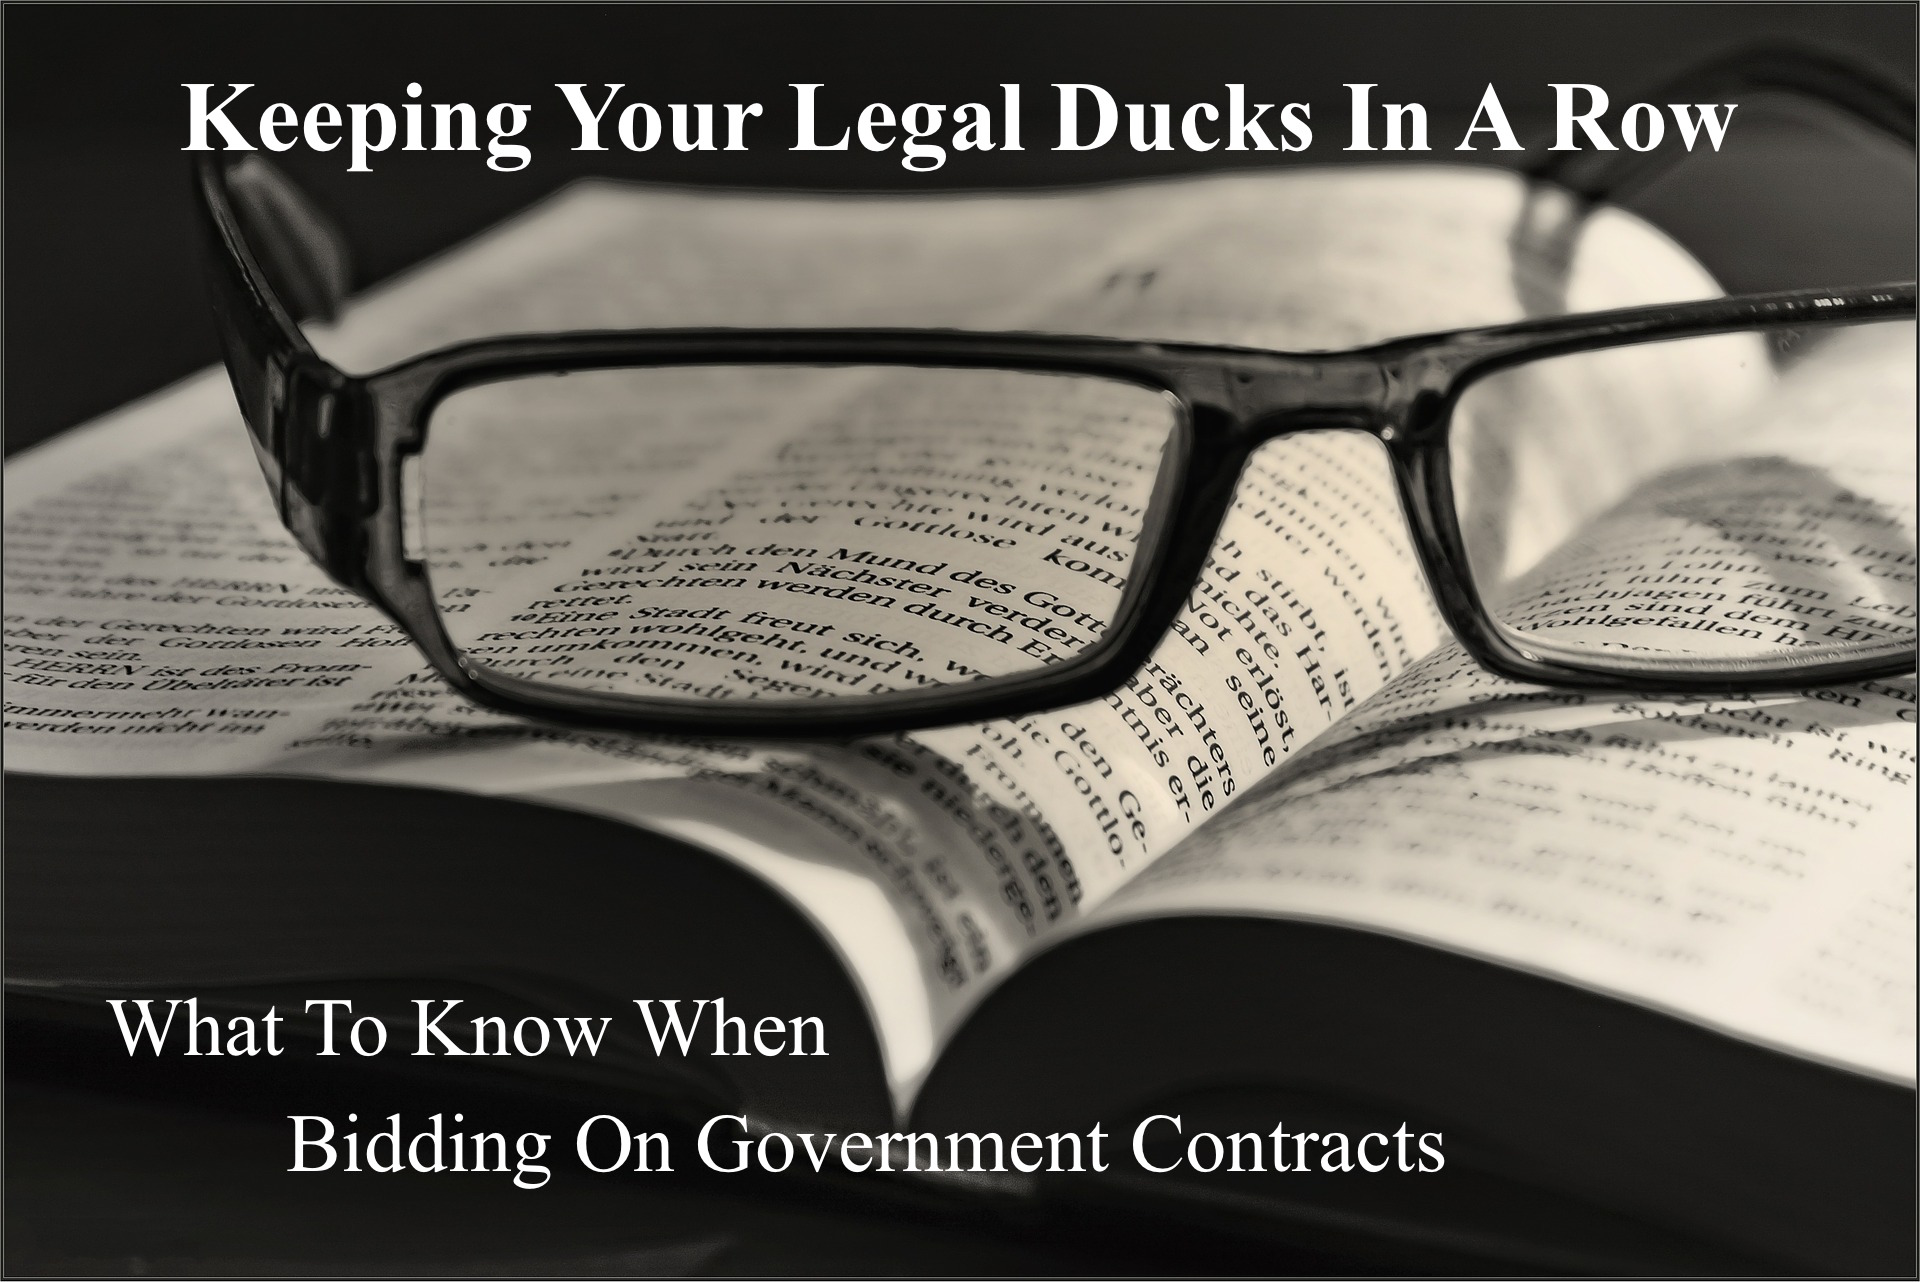 CATMEDIA Government Contracts Legal Ducks in a Row